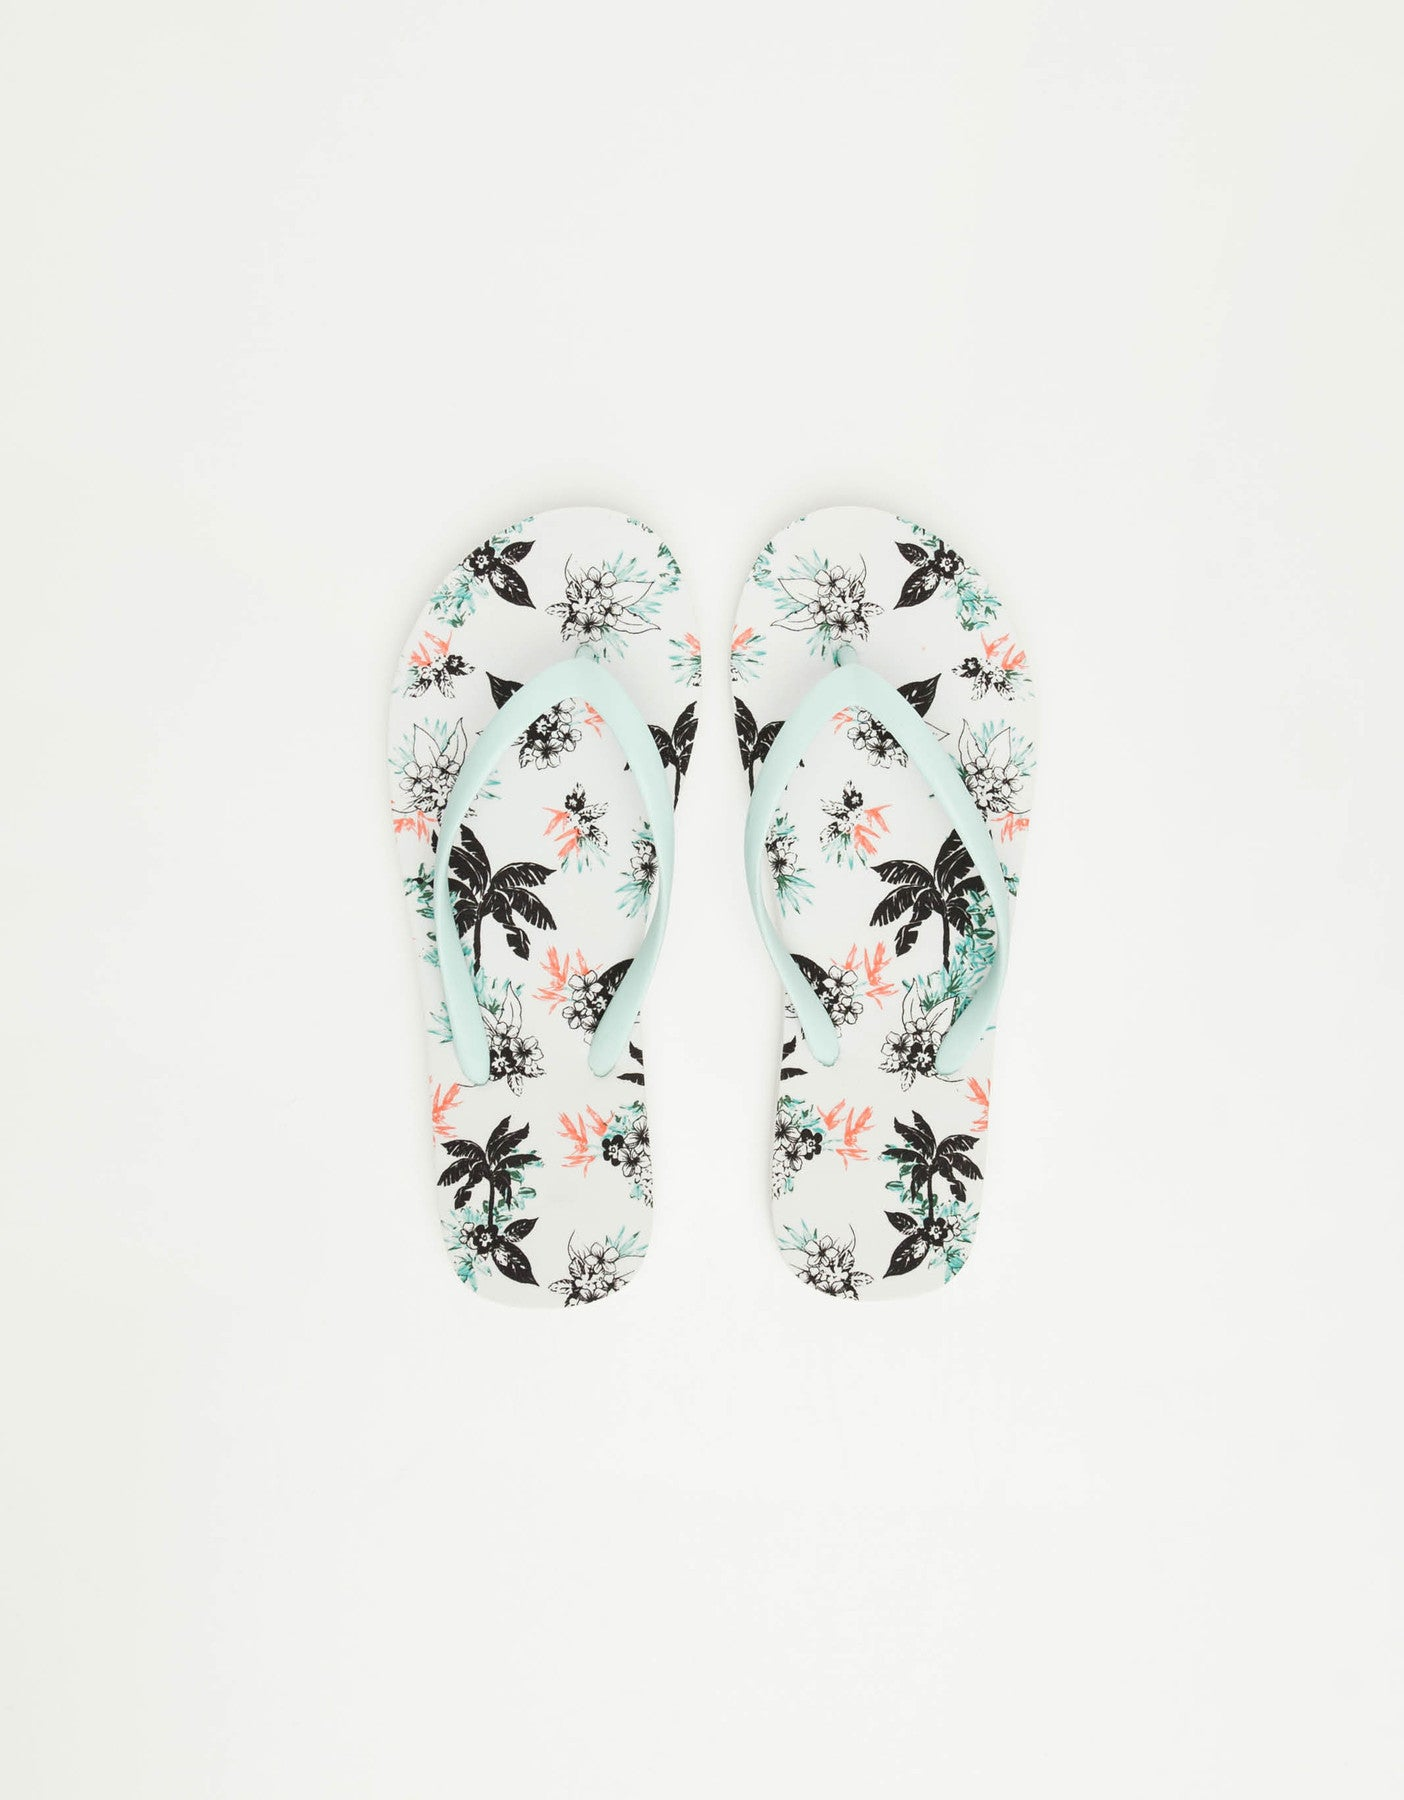 Floral Print Flip Flops with Matching Pochette | Multi Color